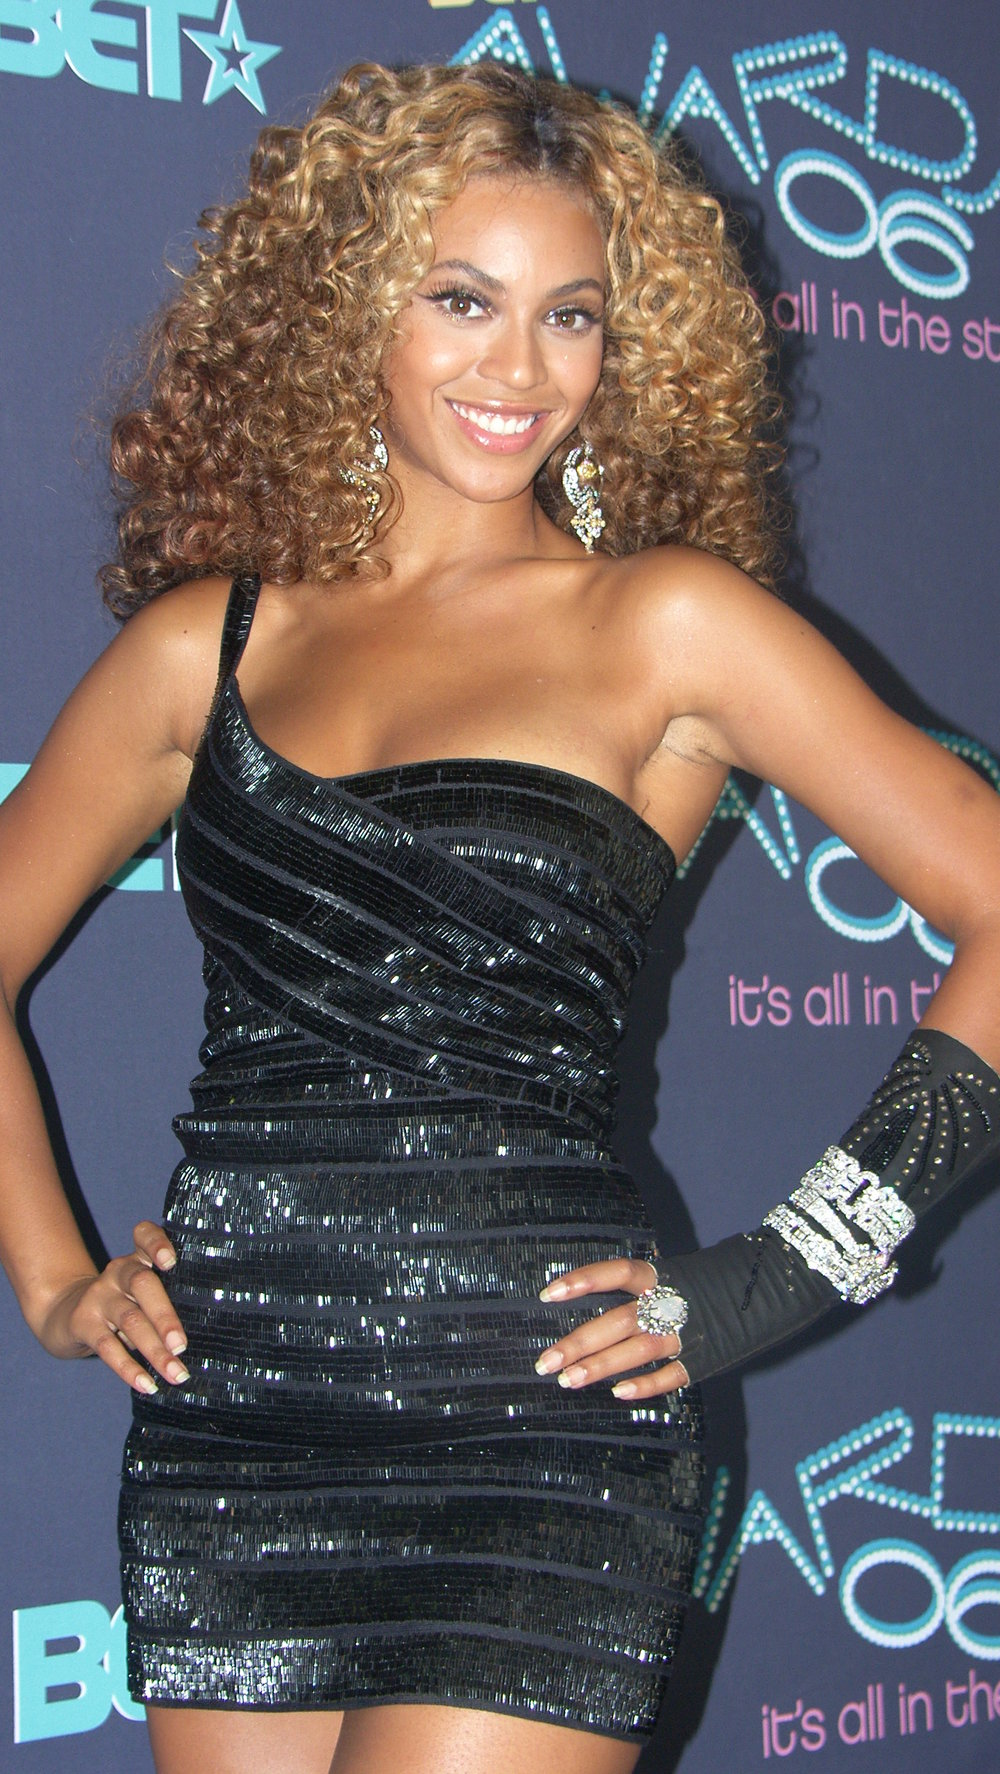 6th Annual BET Awards 2006 272.jpg